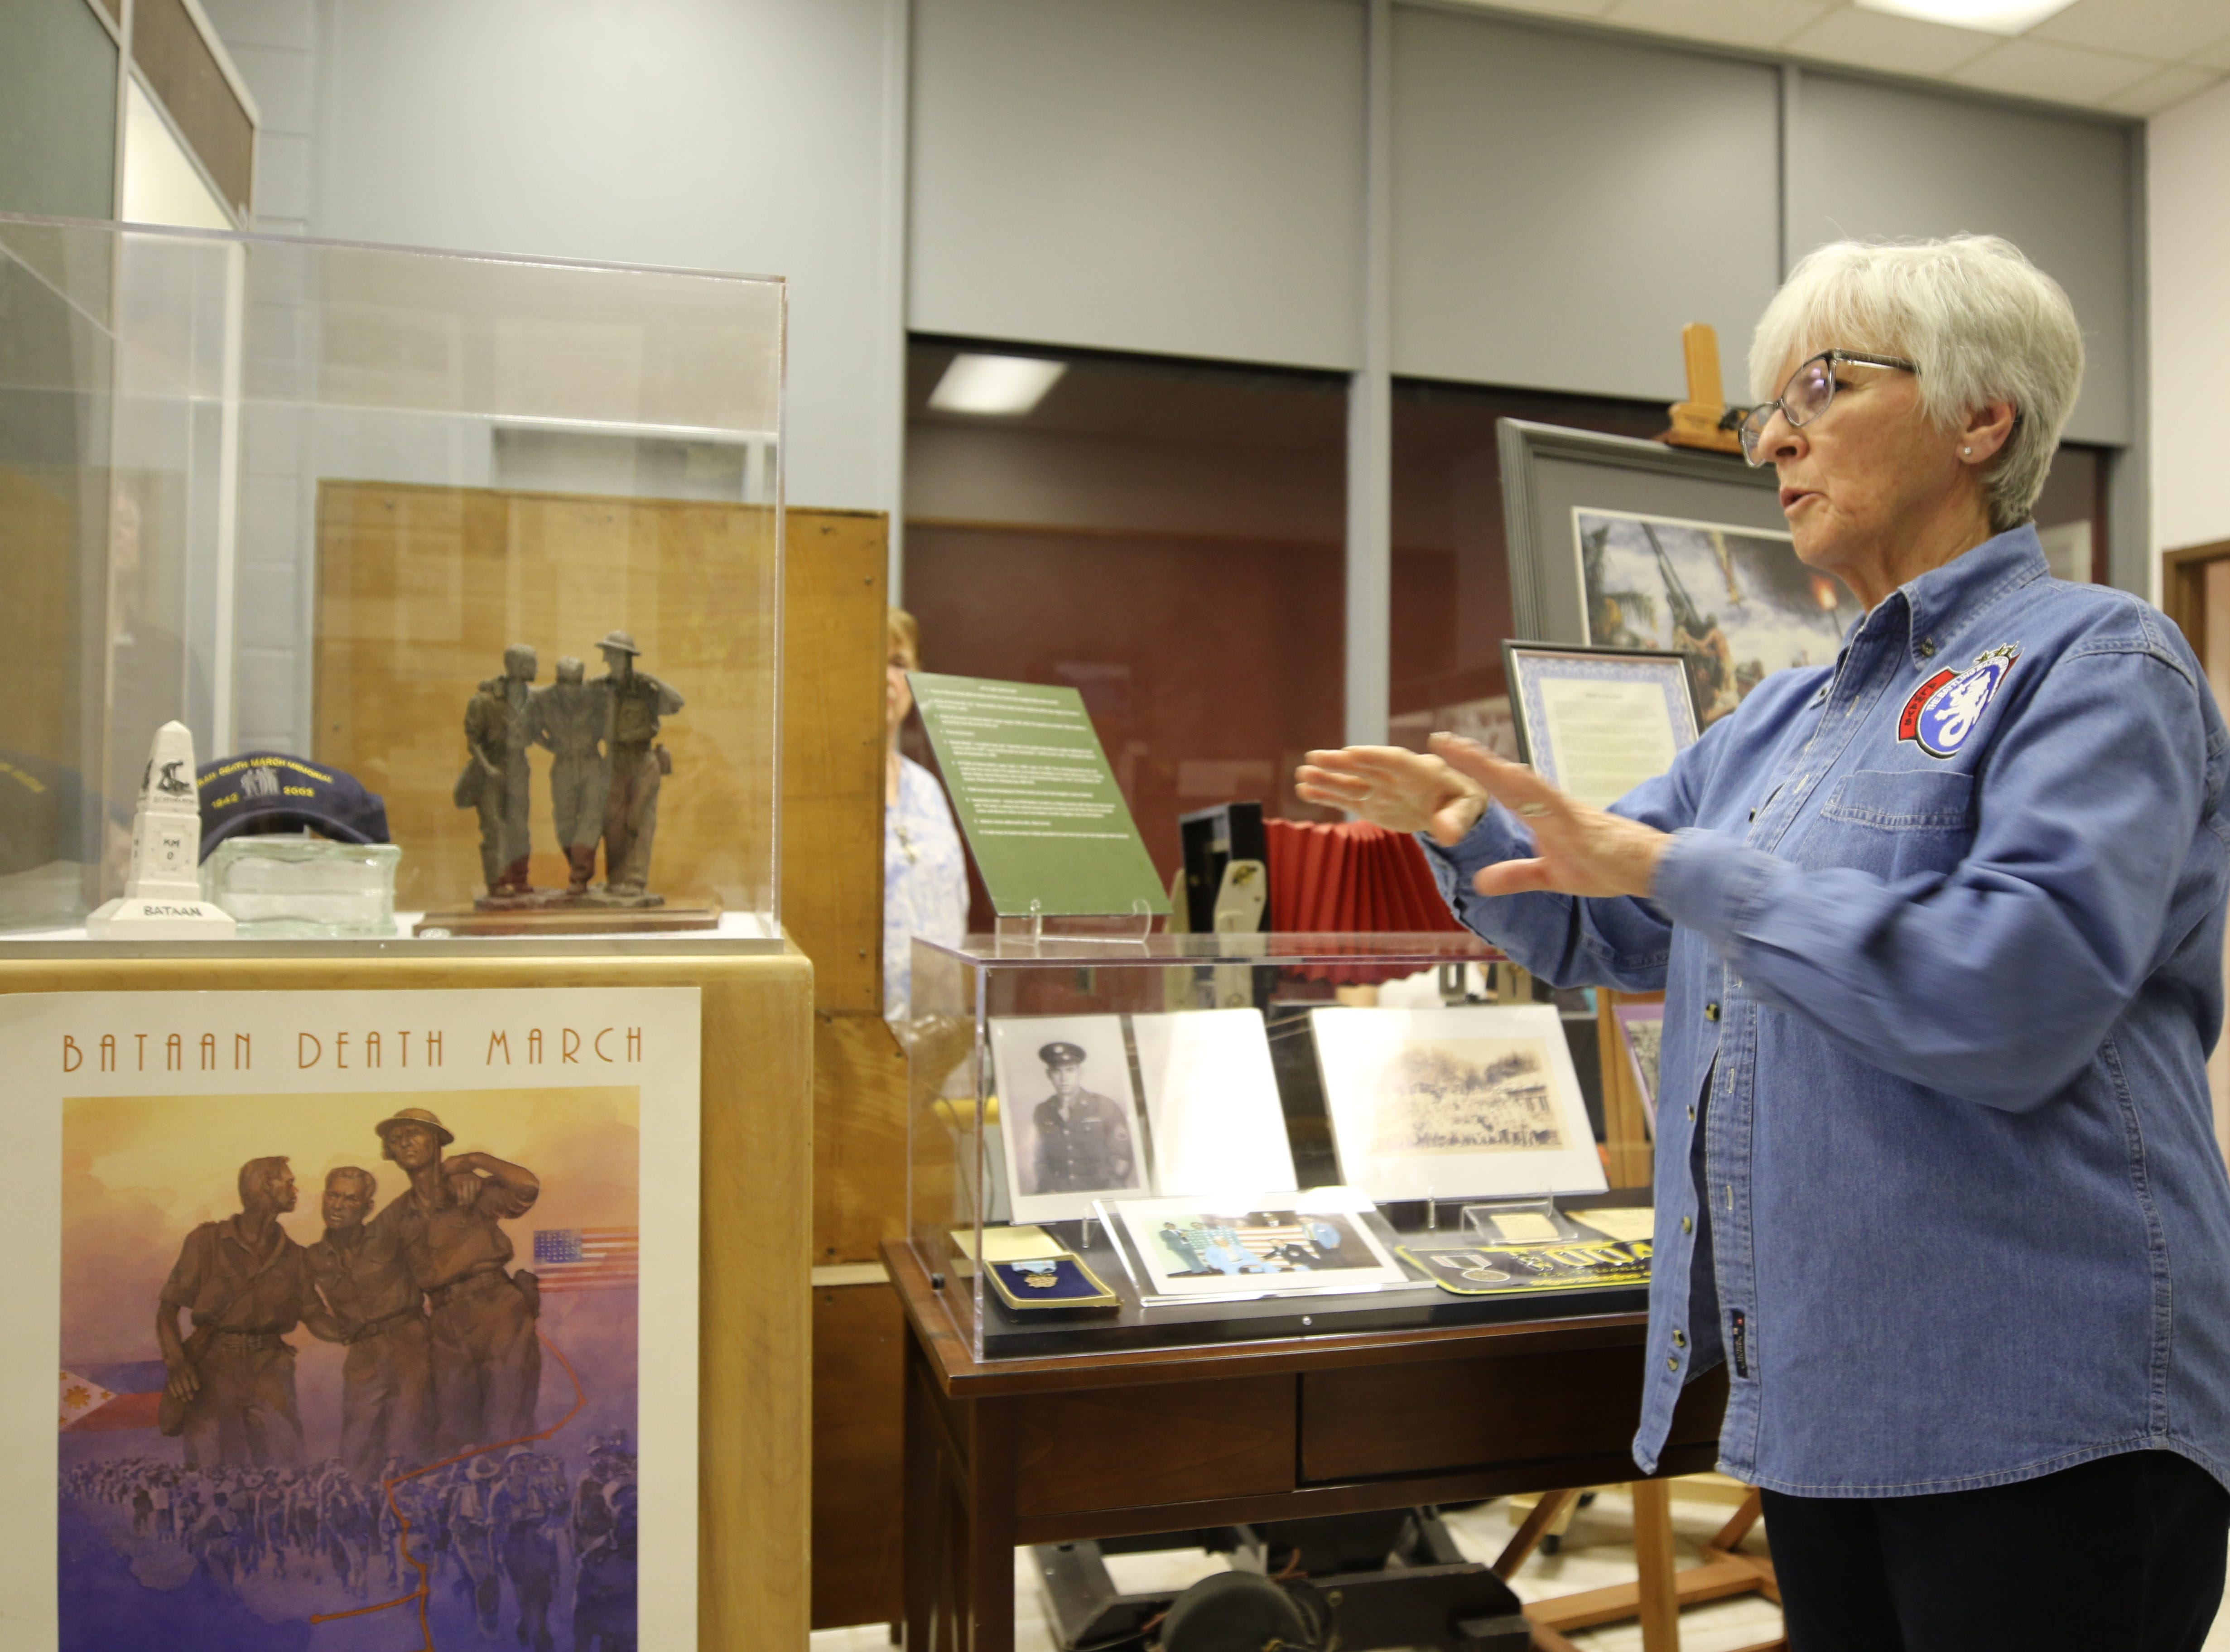 Joanna Sieberg talks about a Bataan Death March display April 9 at the Carlsbad Museum and Art Center. A dedication was held for her late father Charlie James, a Bataan Death March survivor. He received a U.S. Congressional Gold Medal, one of the highest civilian honors that can be bestowed to individuals.